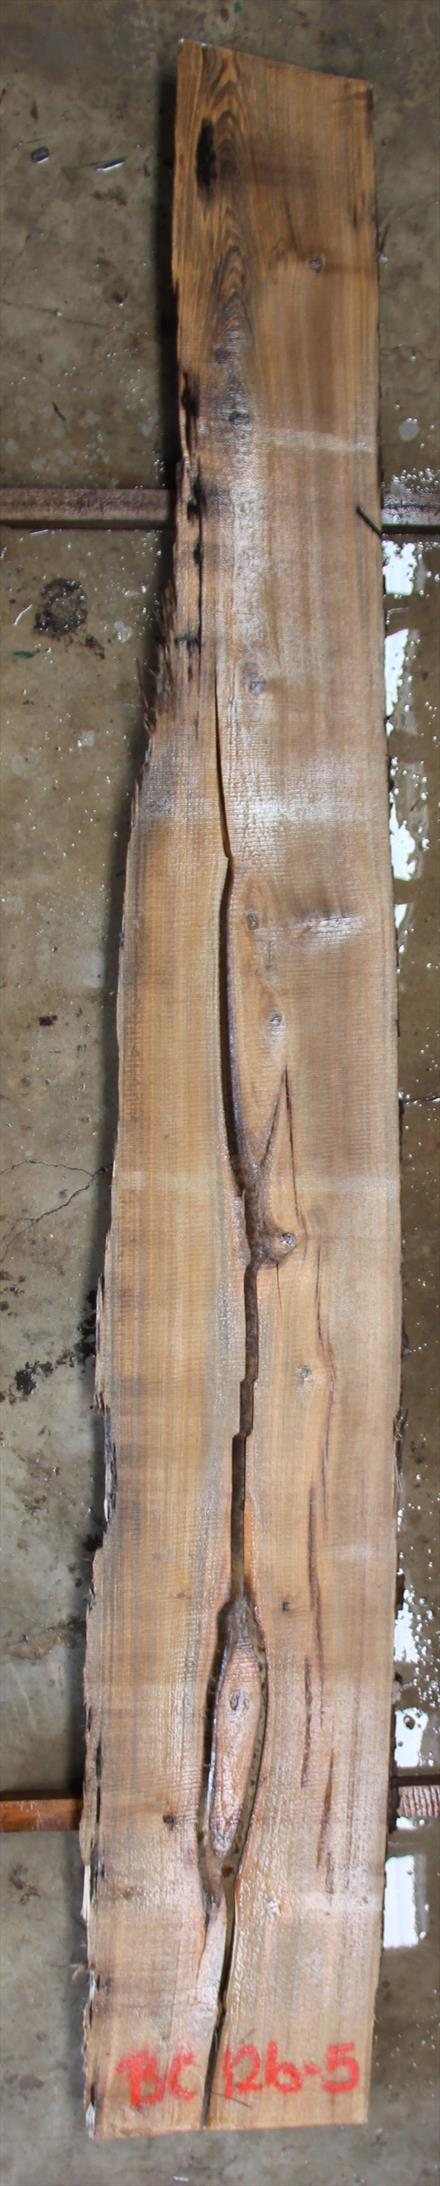 Buried Cypress Slab BC012b-05